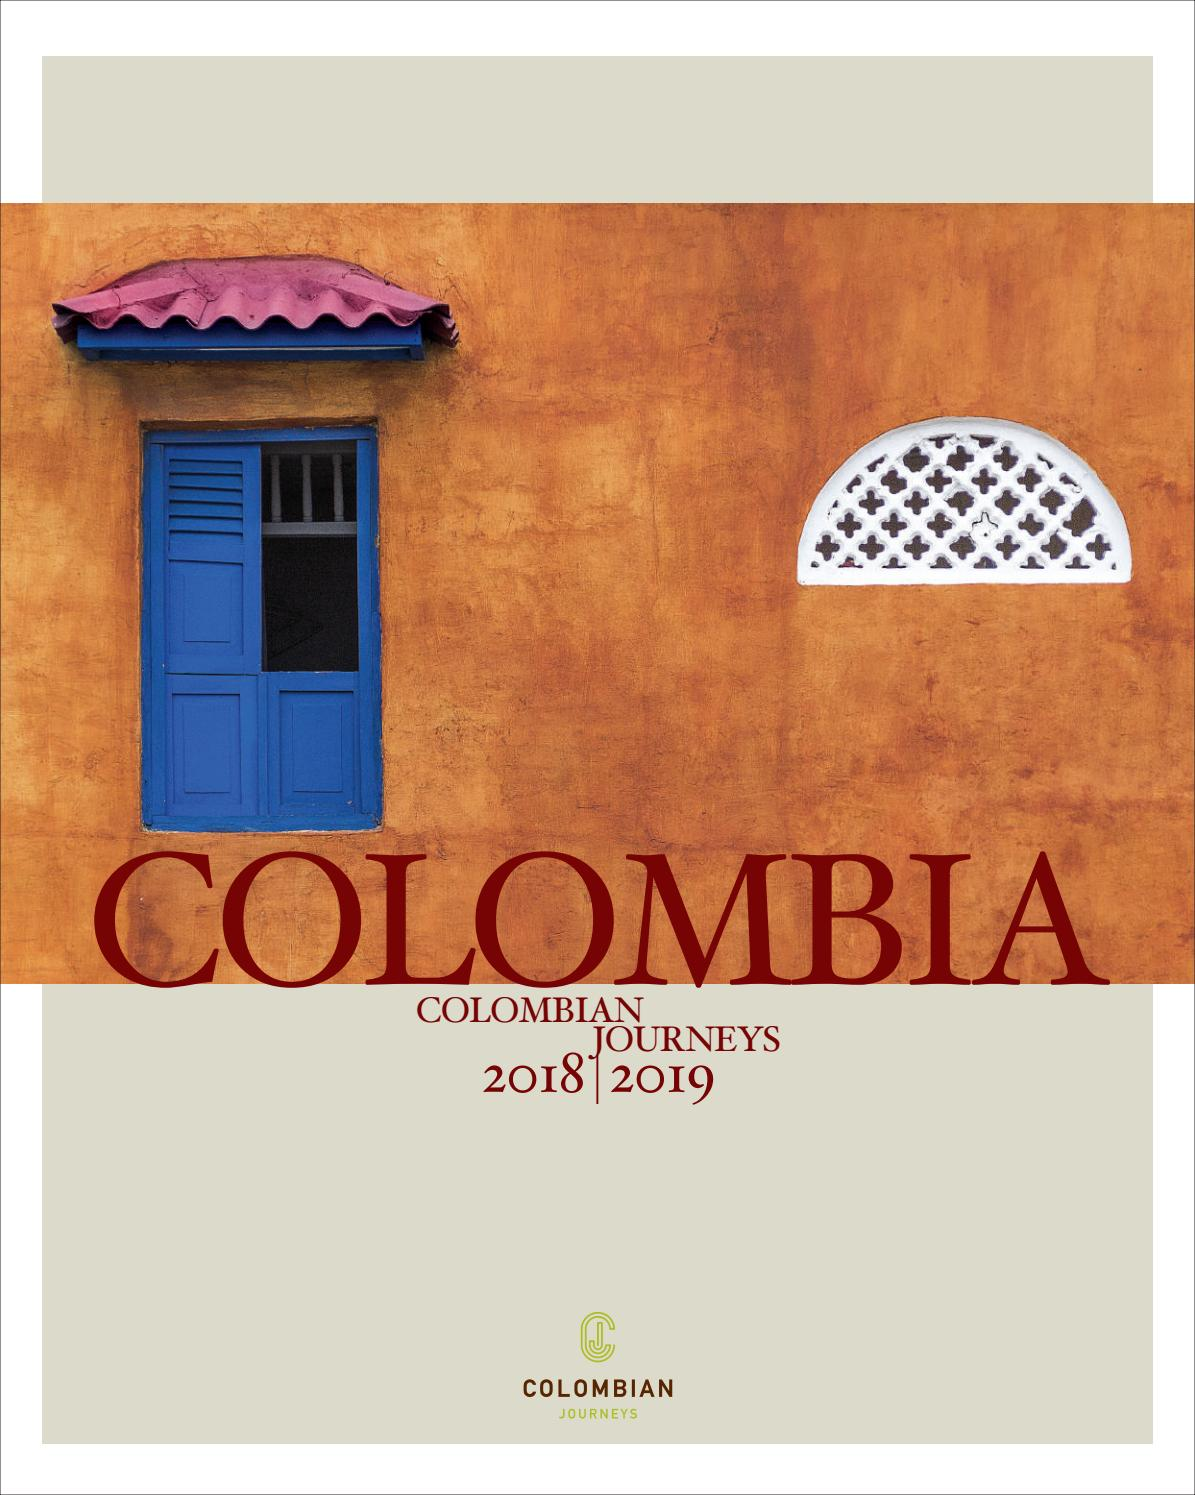 18a661e76dcf Colombian Journeys Brochure 2018-2019 by colombian - issuu